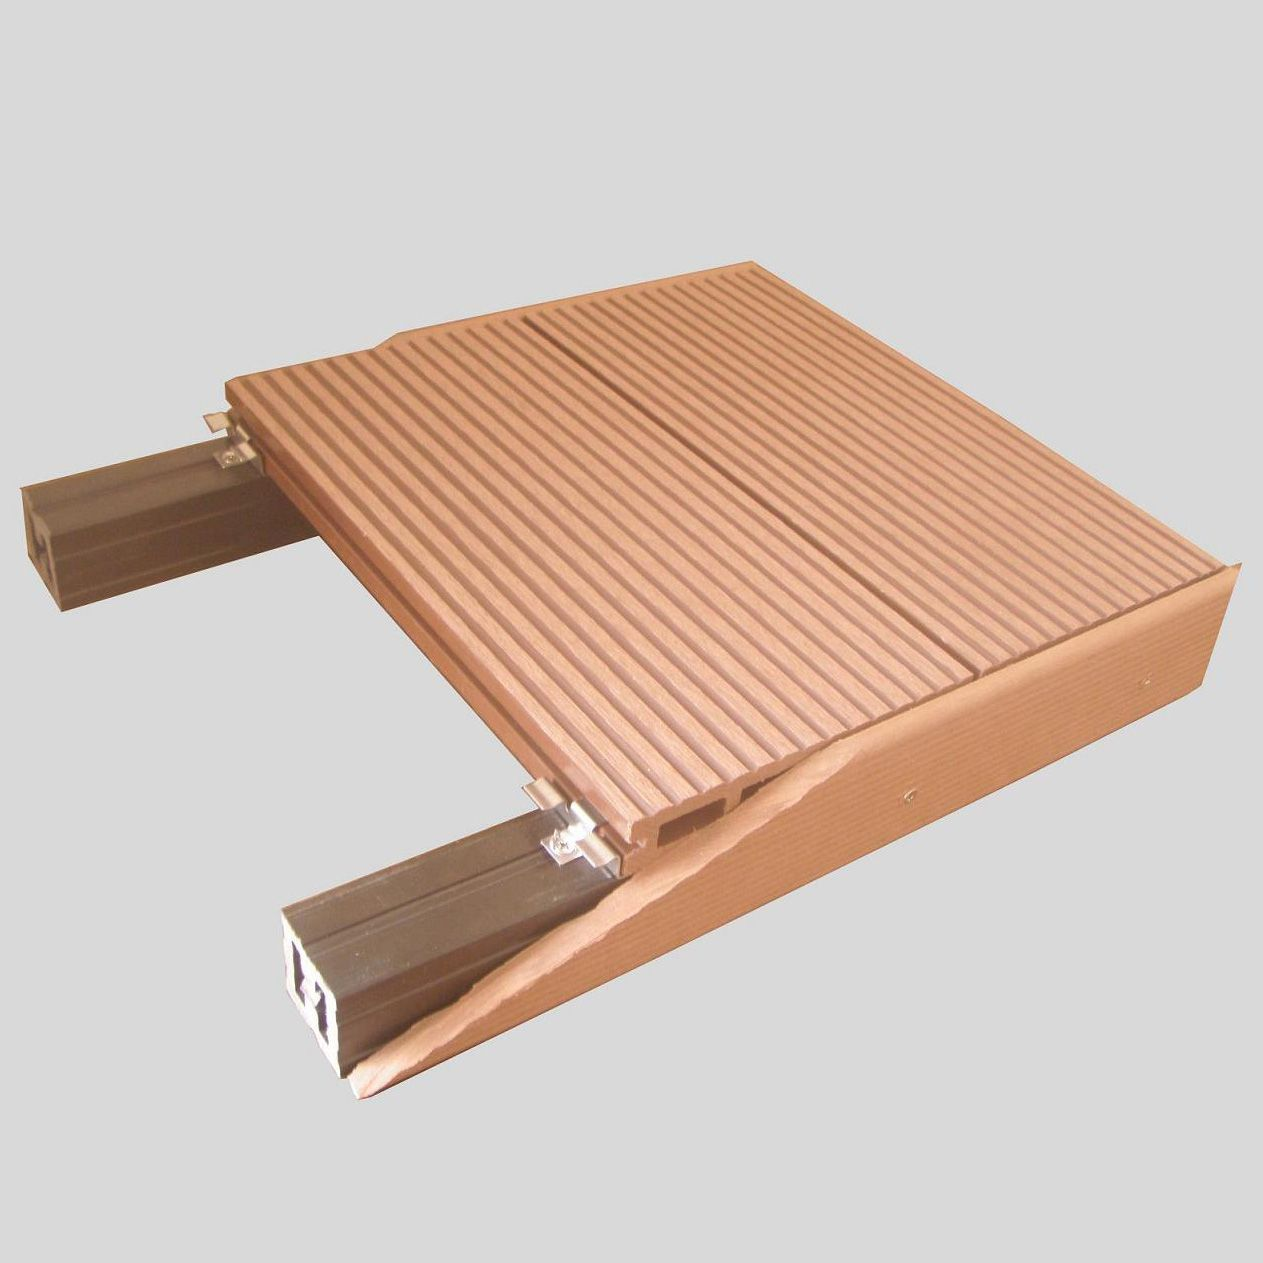 Outdoor waterproof wood plastic composite decking wpc outdoor outdoor waterproof wood plastic composite decking wpc outdoor decking ho023147 baanklon Images